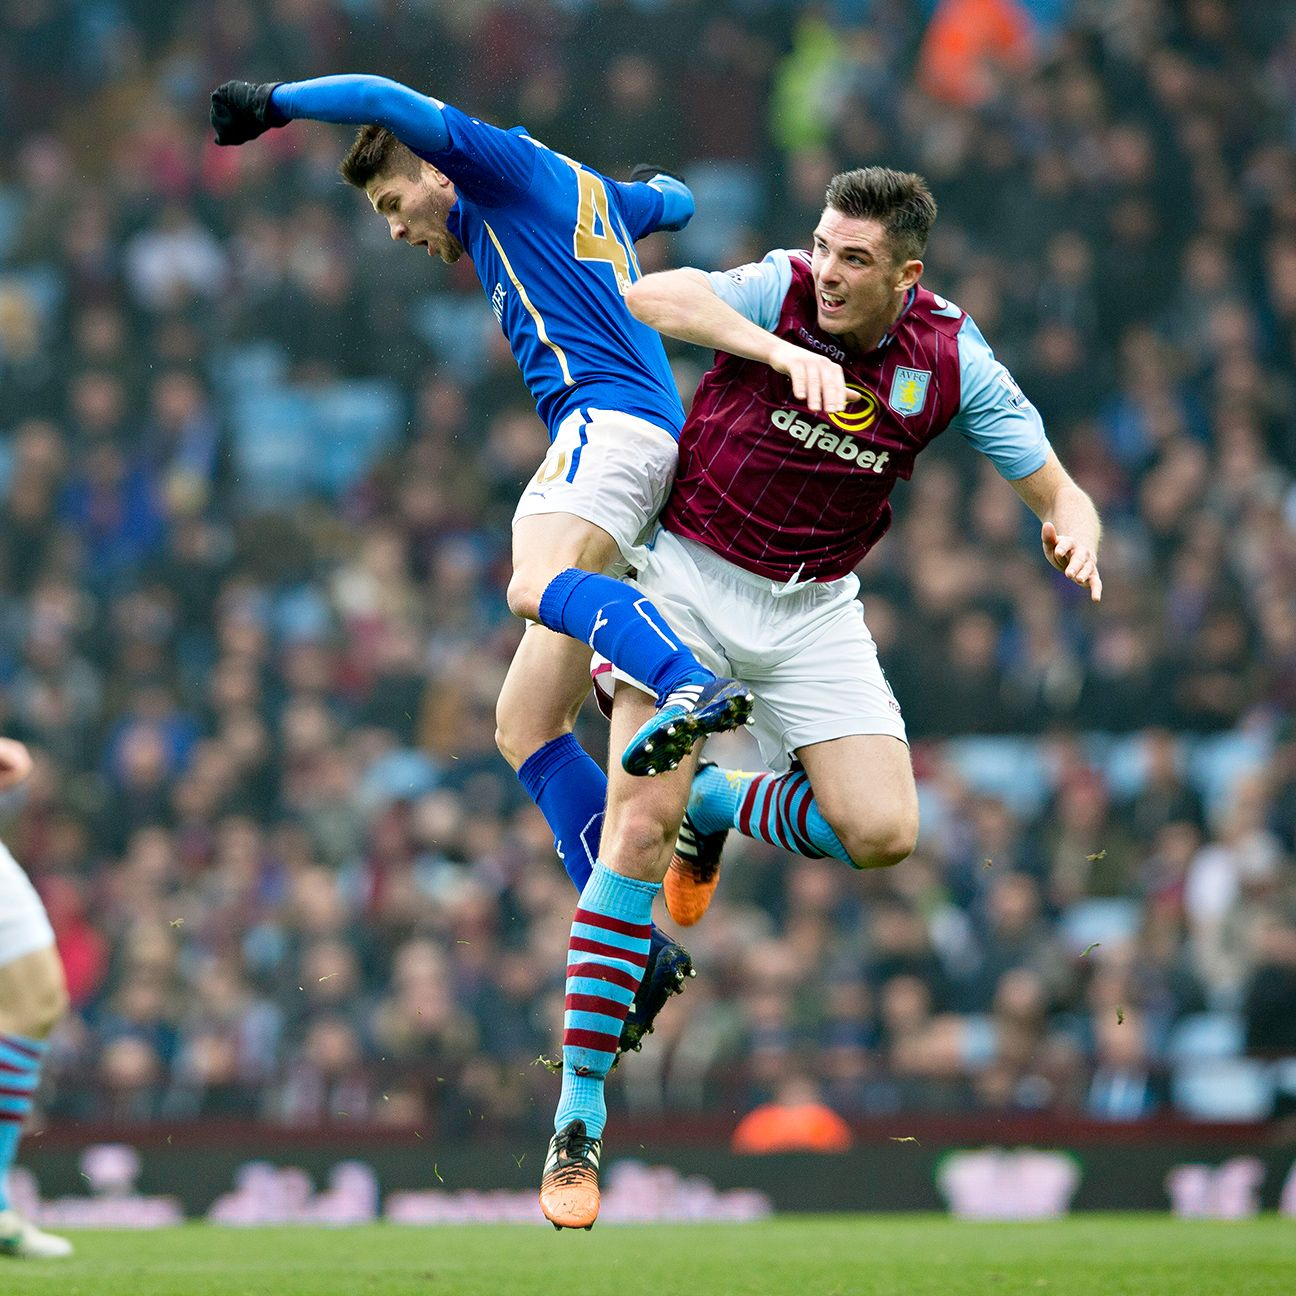 It seems to be a tense affair any time Aston Villa face Leicester.